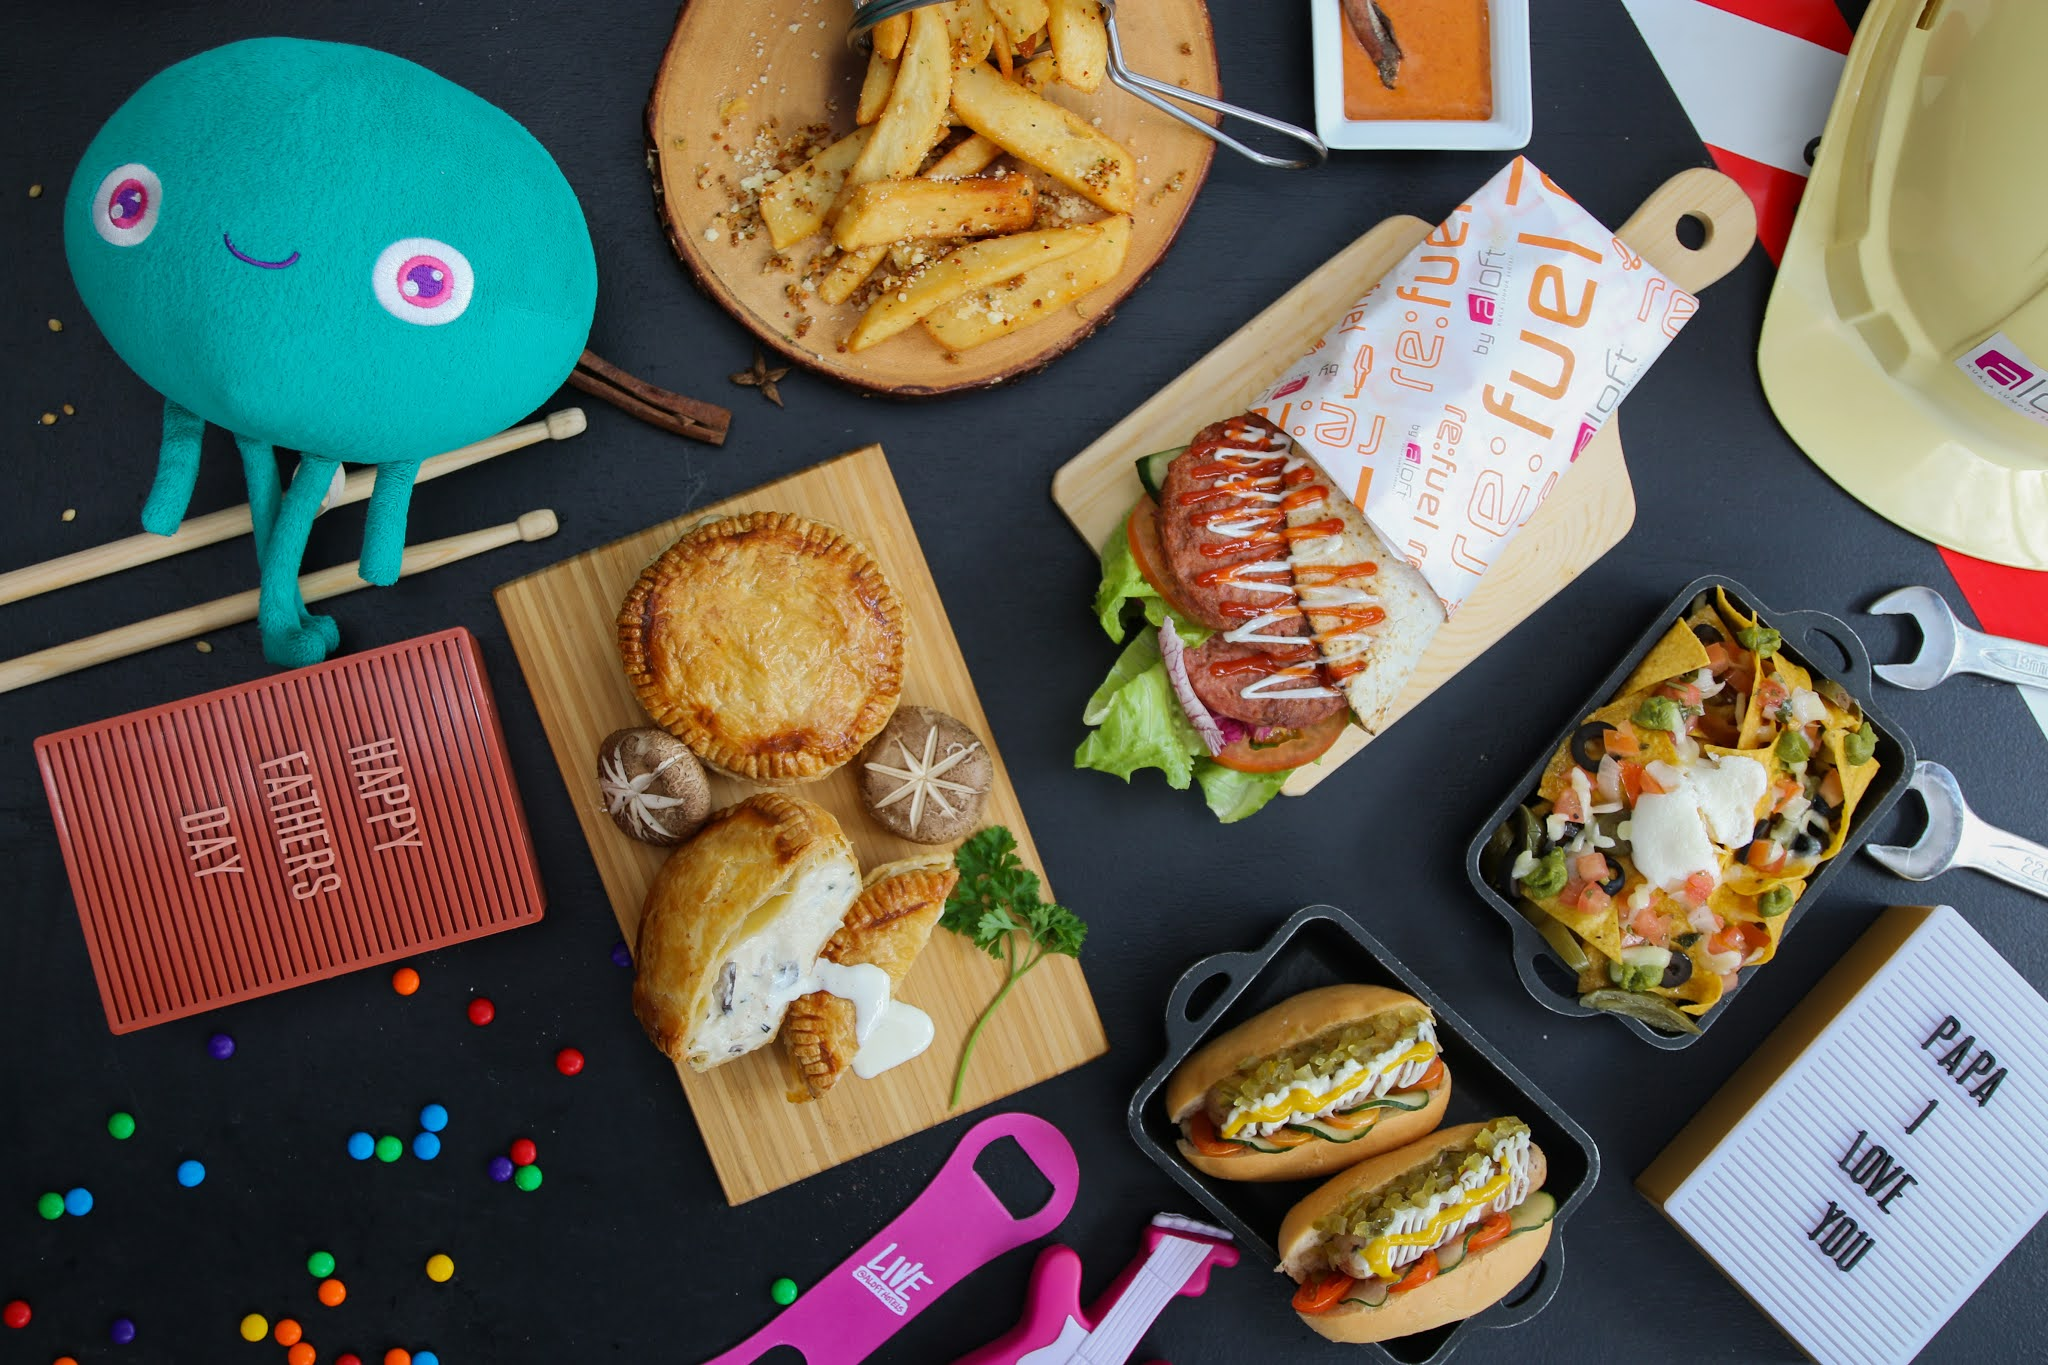 aloft kuala lumpur sentral: feast on the daddy's platter this father's day